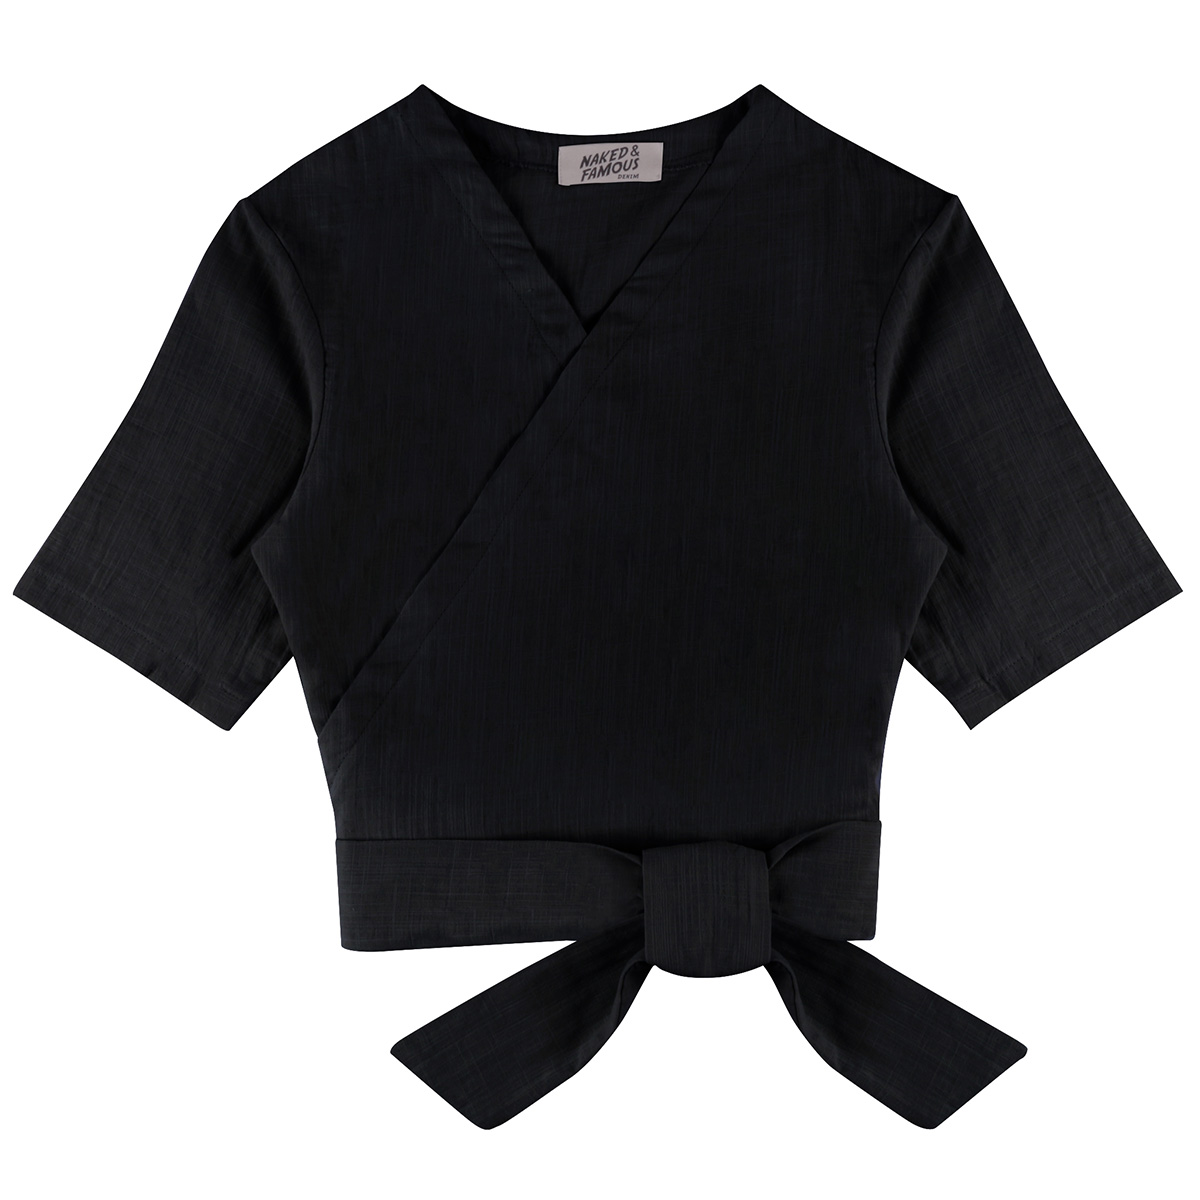 DOUBLE WEAVE GAUZE - BLACK - Wrap Top